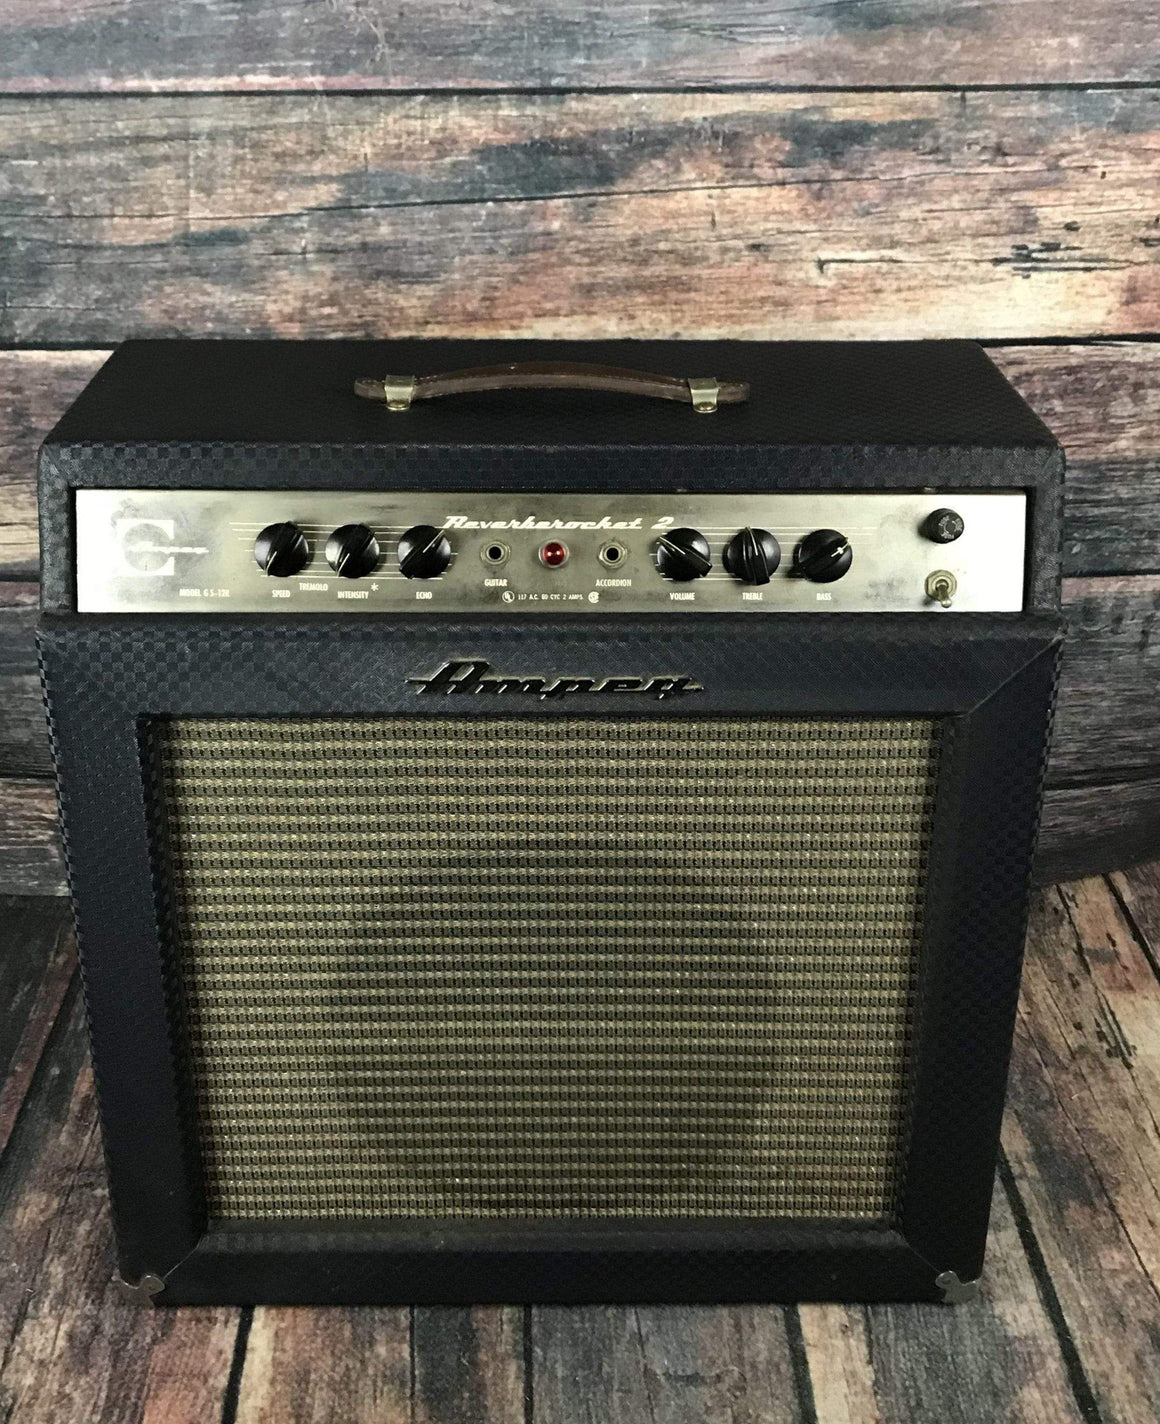 Ampeg Amp Used Ampeg 60's ReverbeRocket 2 Blue Tolex 1x12 Tube Combo Amp with Footswitch